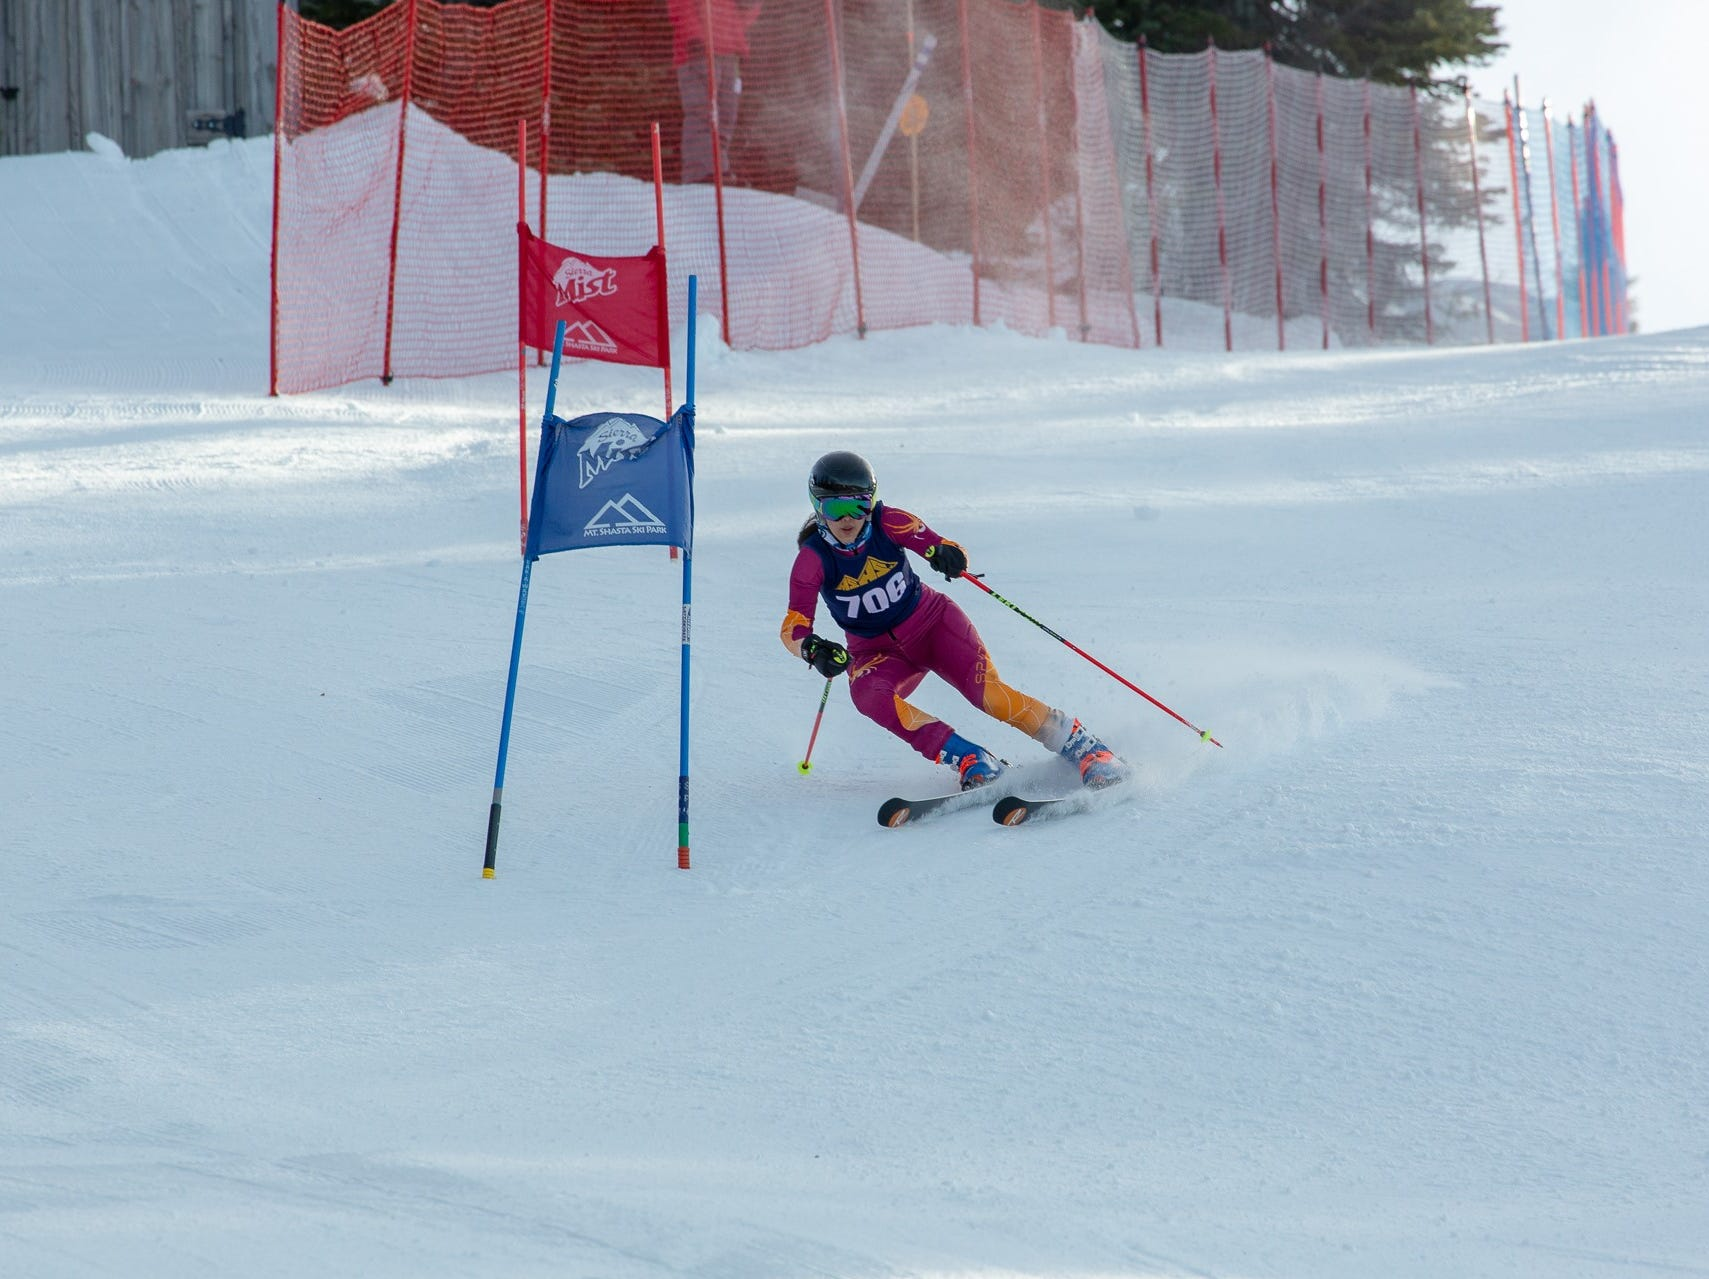 Zoe Malee of Mt. Shasta competes in the first high school ski meet of 2019 on Monday, Jan. 14 at Mt. Shasta Ski Park.